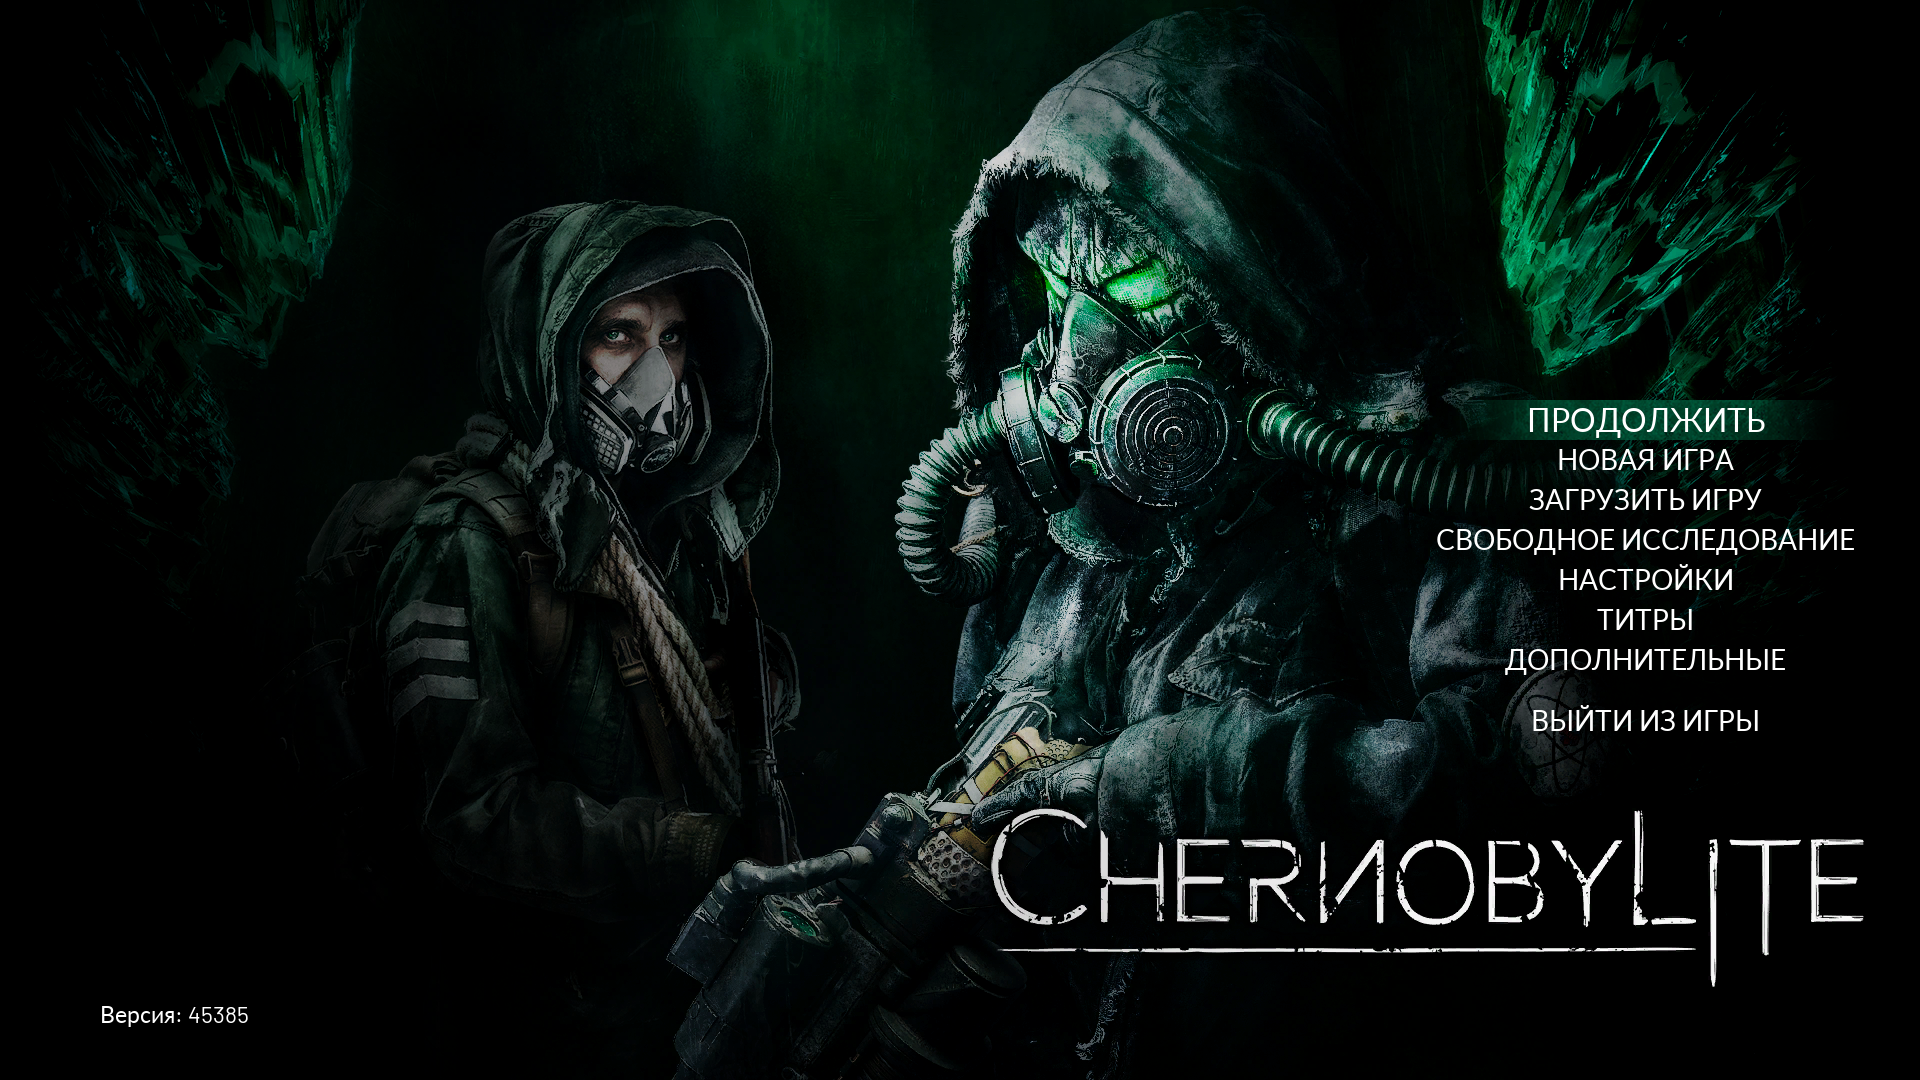 ChernobylGame-Win64-Shipping 2021-07-29 16-20-28-11.png